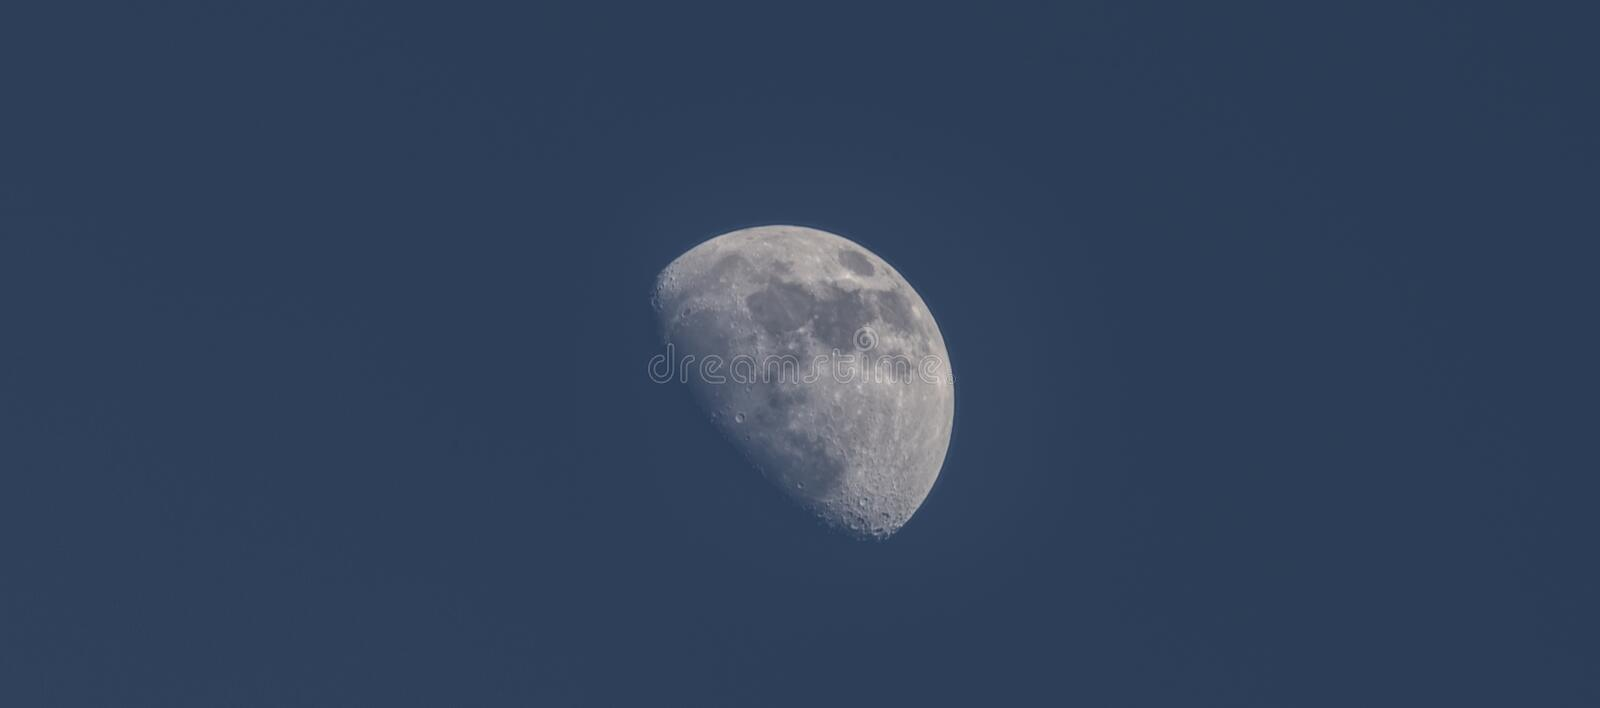 Half blue moon with seas and craters and blue winter sky. Half blue moon with seas and craters and dark blue winter sky stock photography